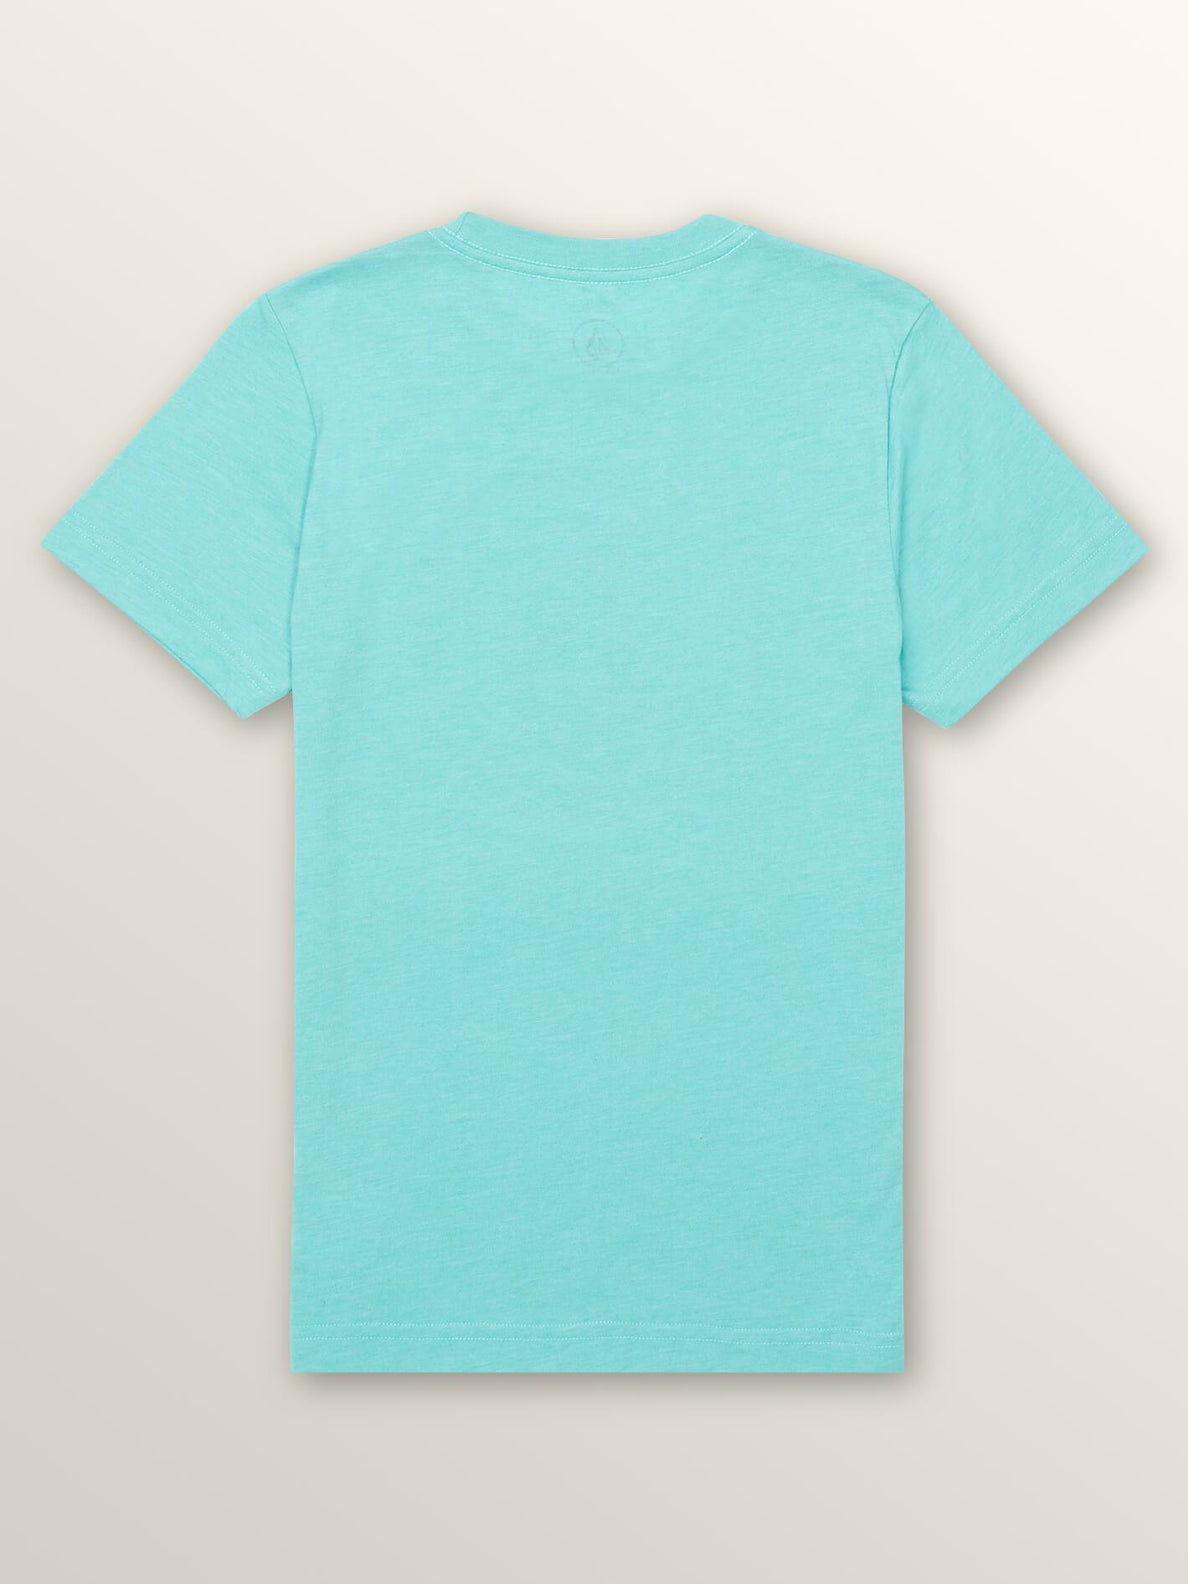 Big Boys Statiq Short Sleeve Tee In Turquoise, Back View